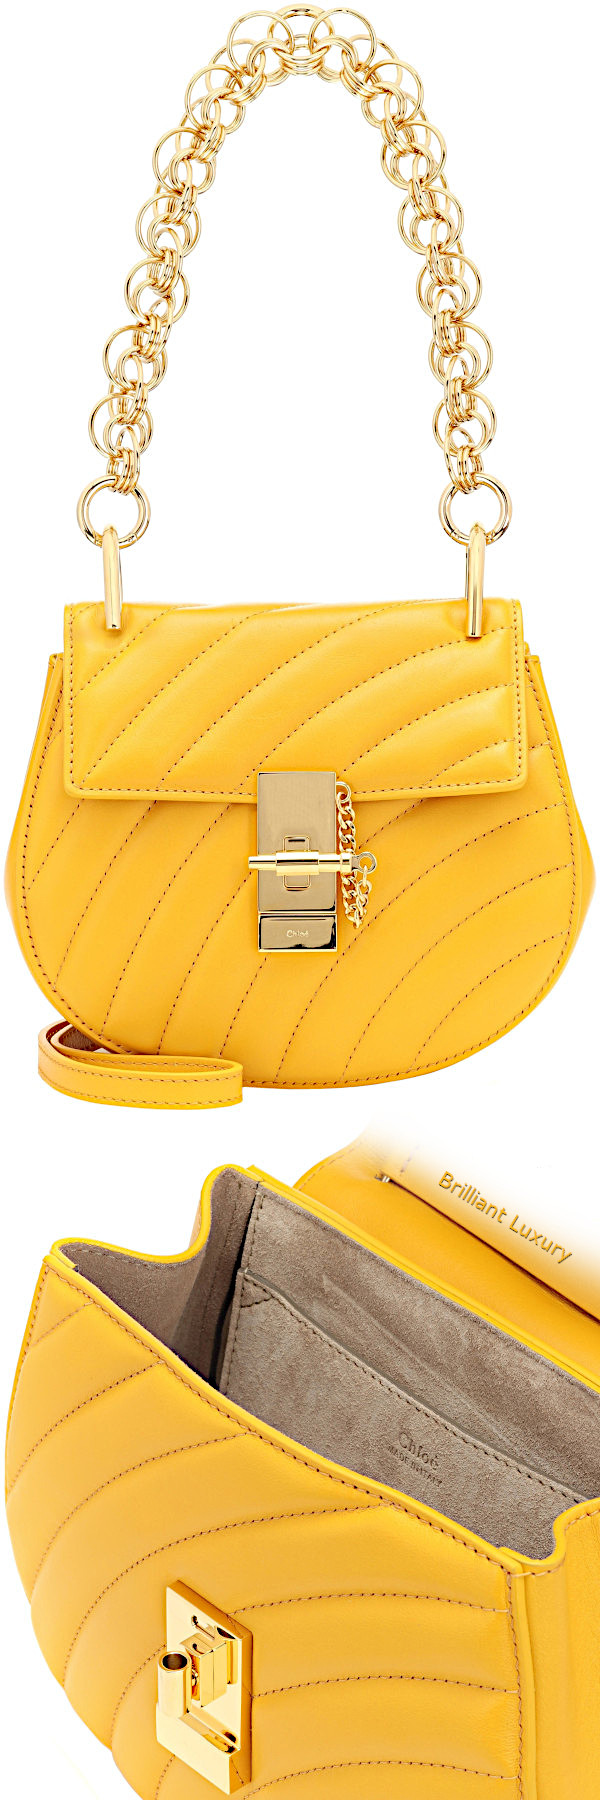 Chloé Drew mini bijou shoulder bag in yellow